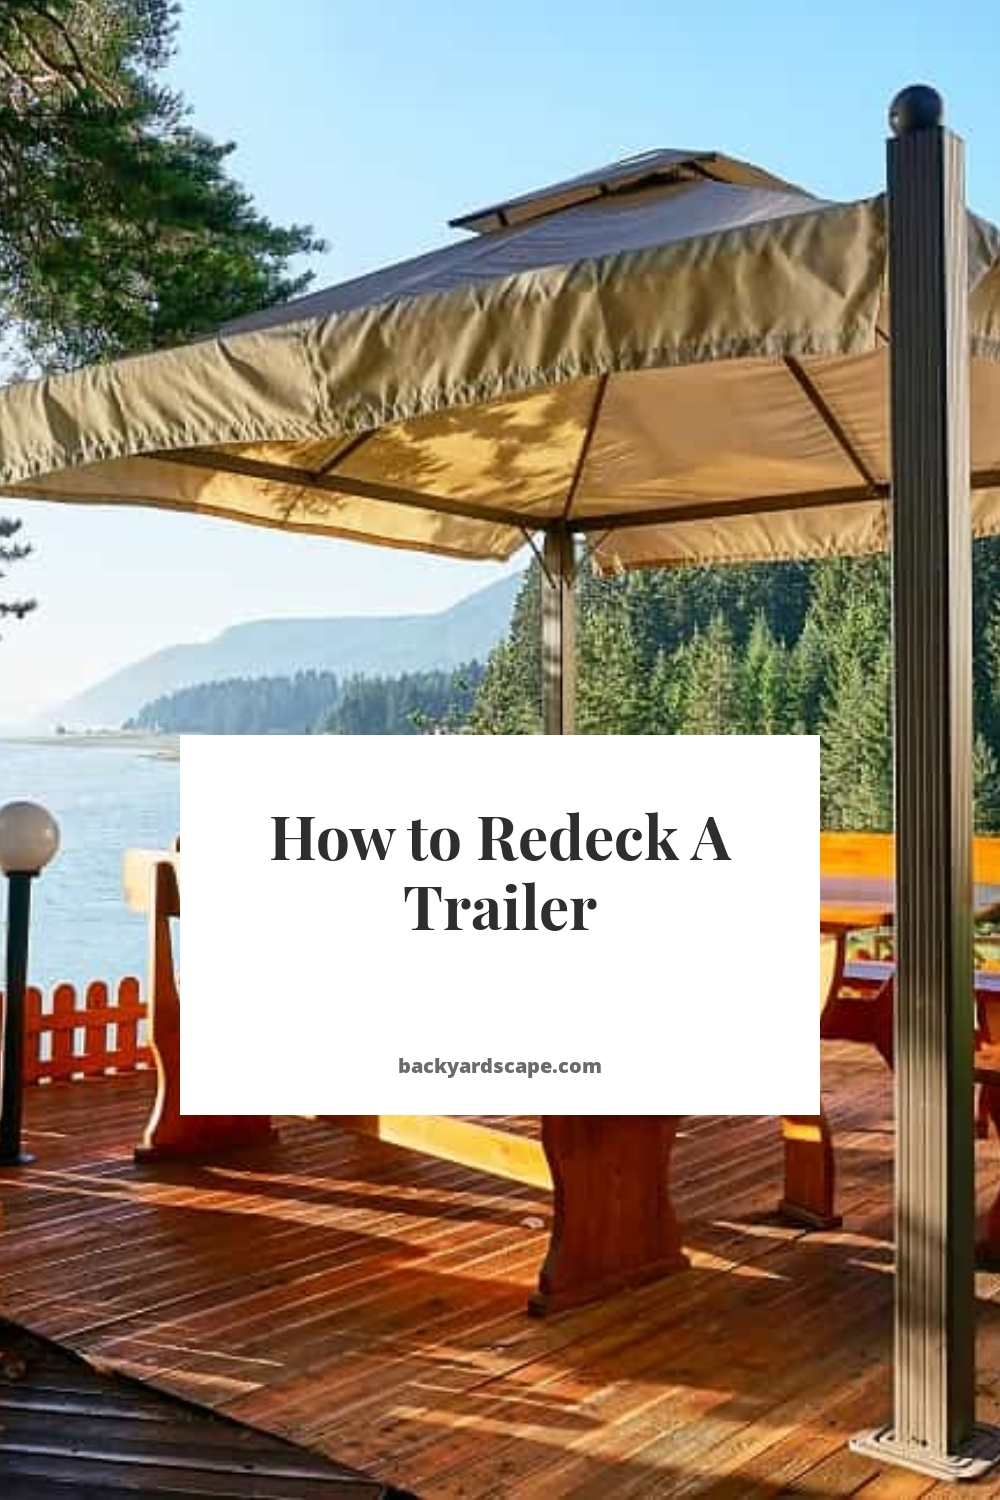 How to Redeck A Trailer